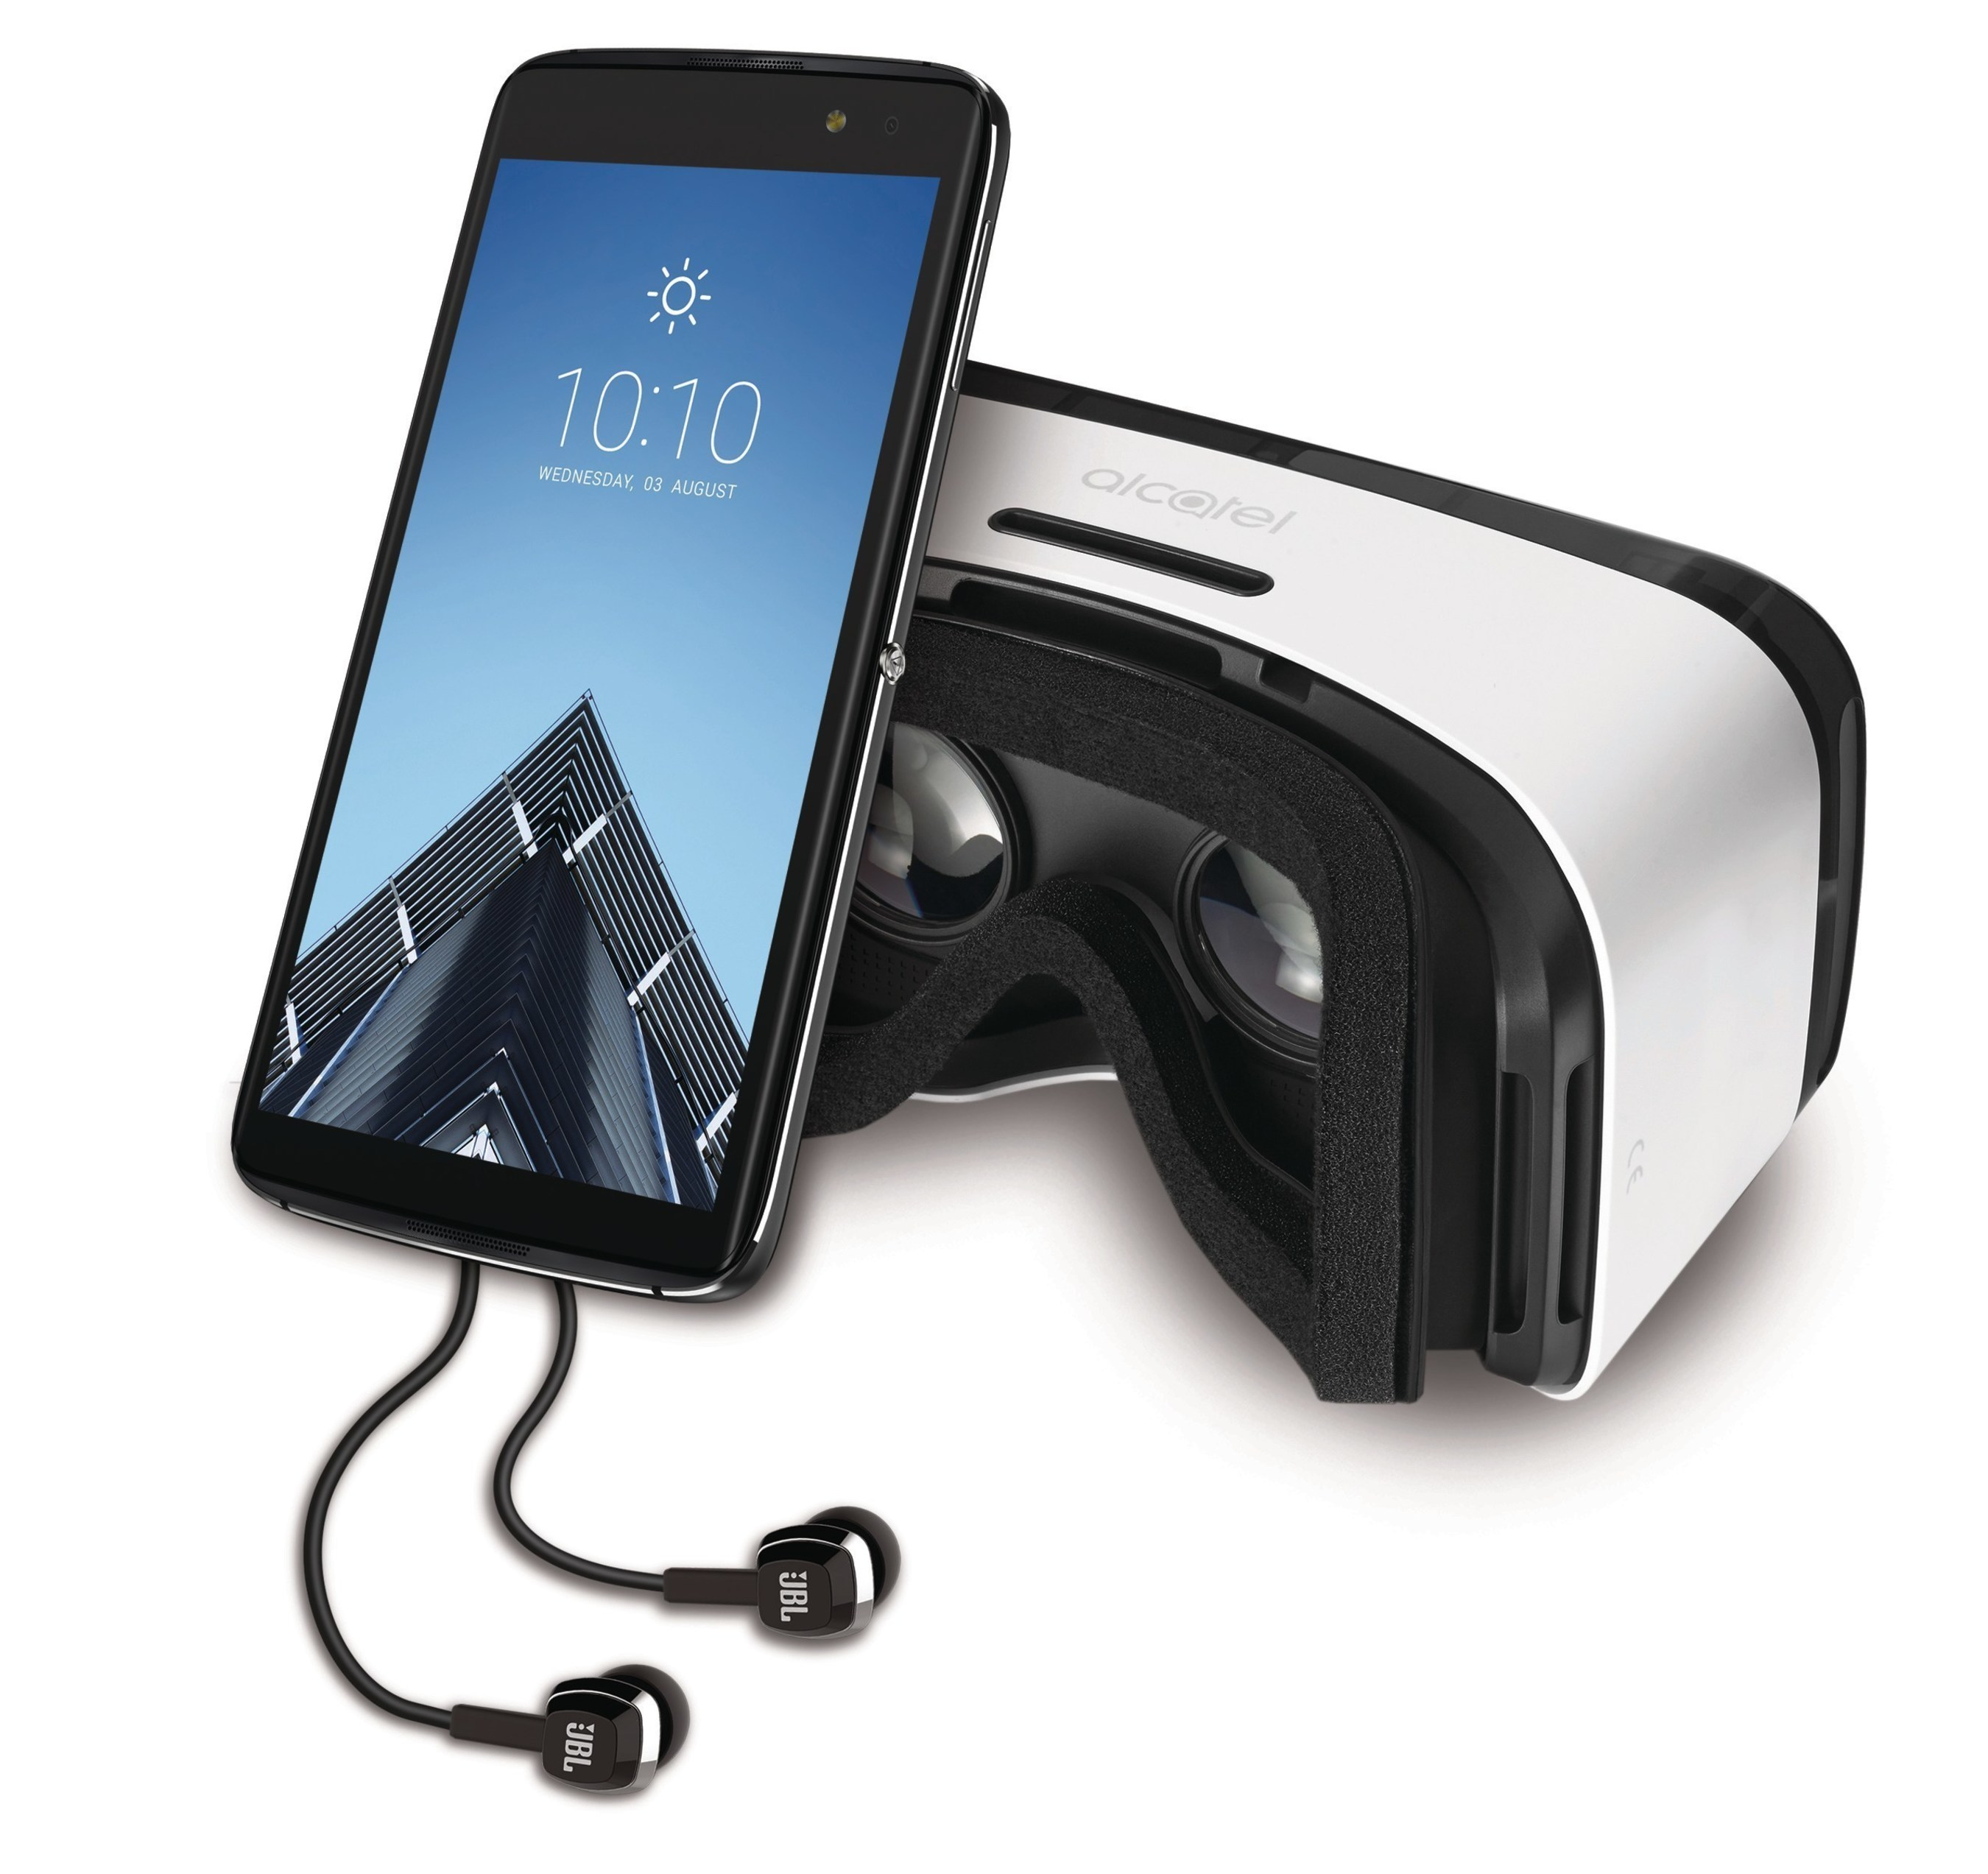 Ready 4 More? Alcatel Announces The Award-Winning IDOL 4S With VR Goggle Packaging Bundle